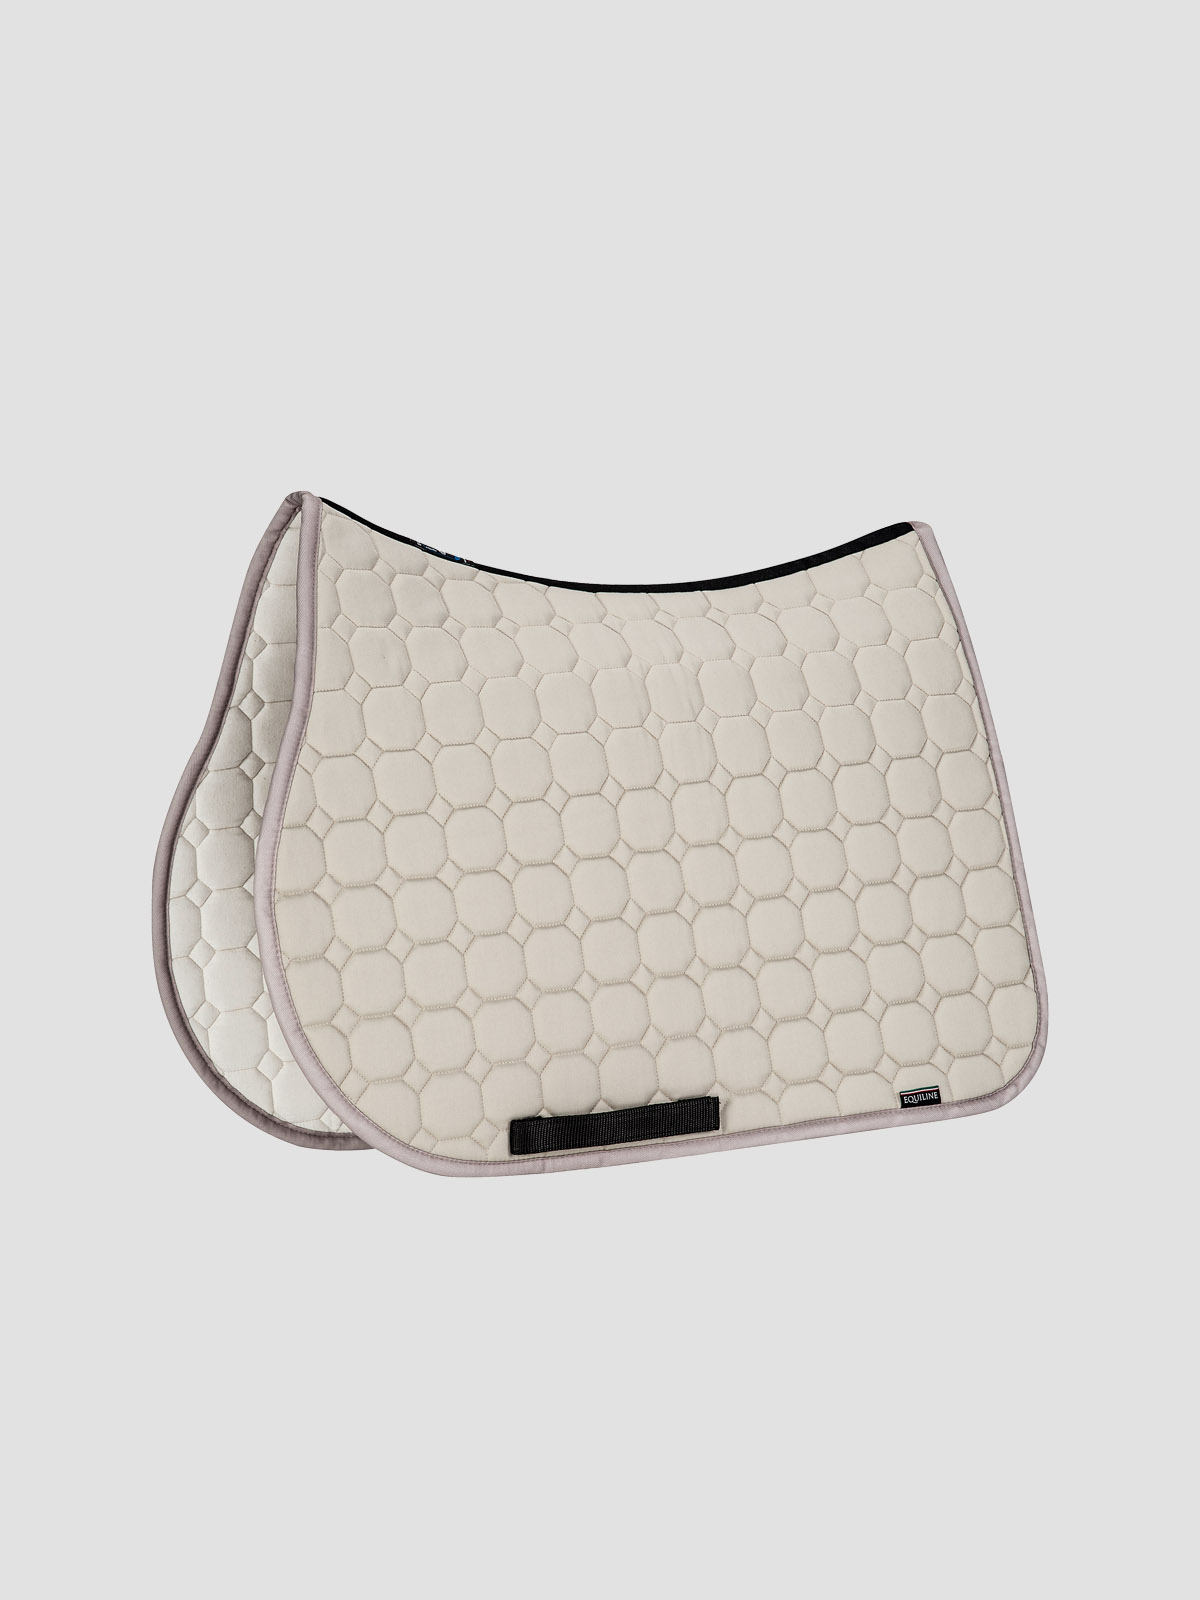 Octagon Saddle Pad 3